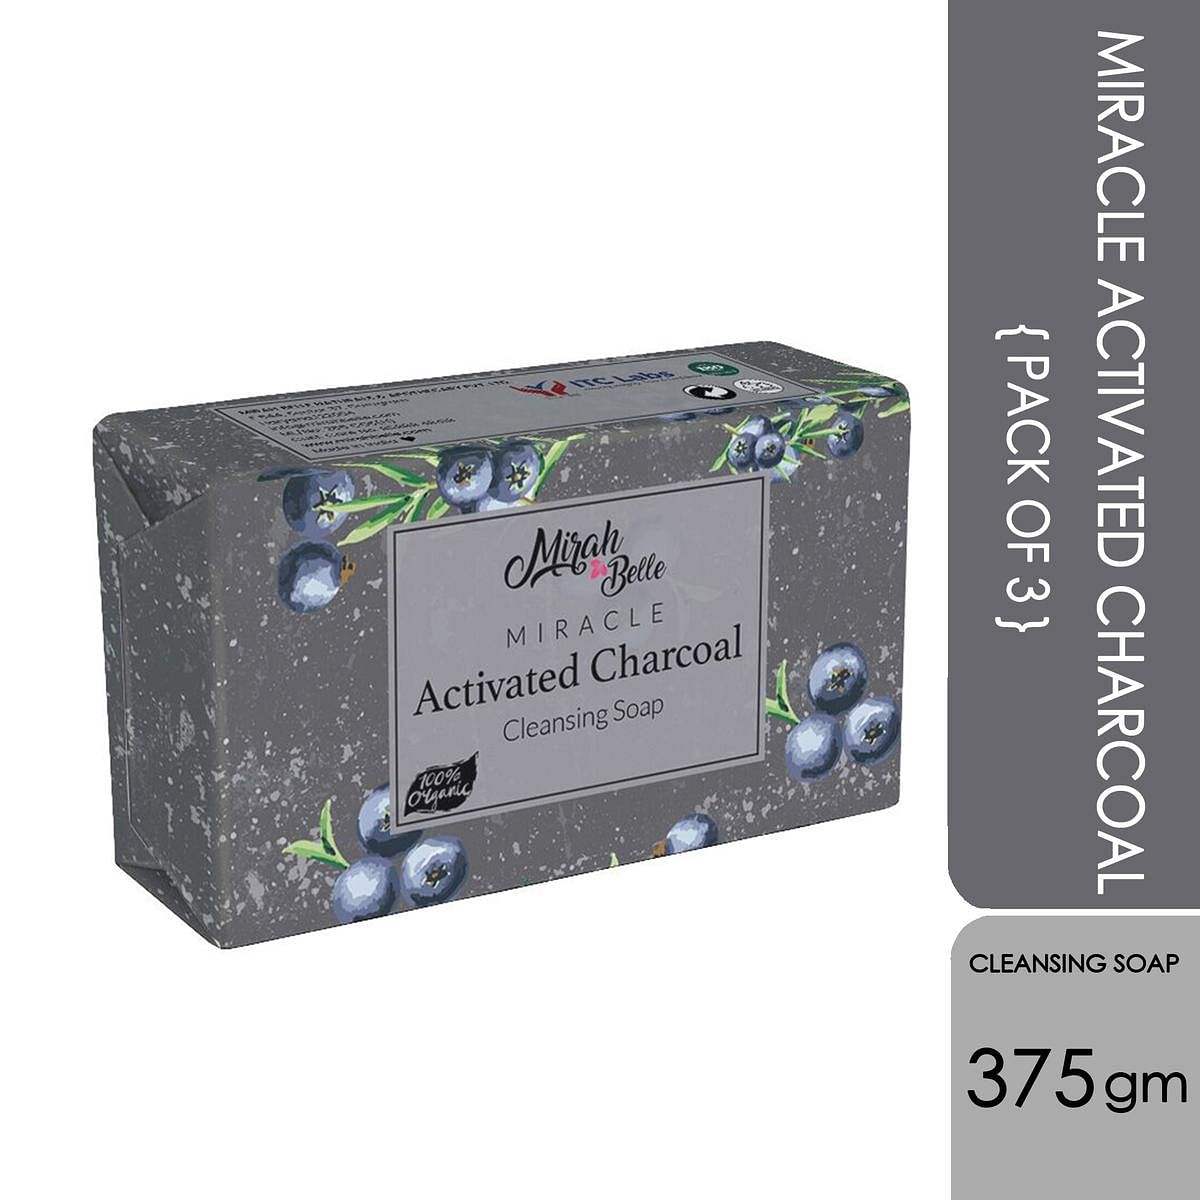 Mirah Belle Miracle Charcoal Cleansing Soap - Pack Of 3 - 375Gm